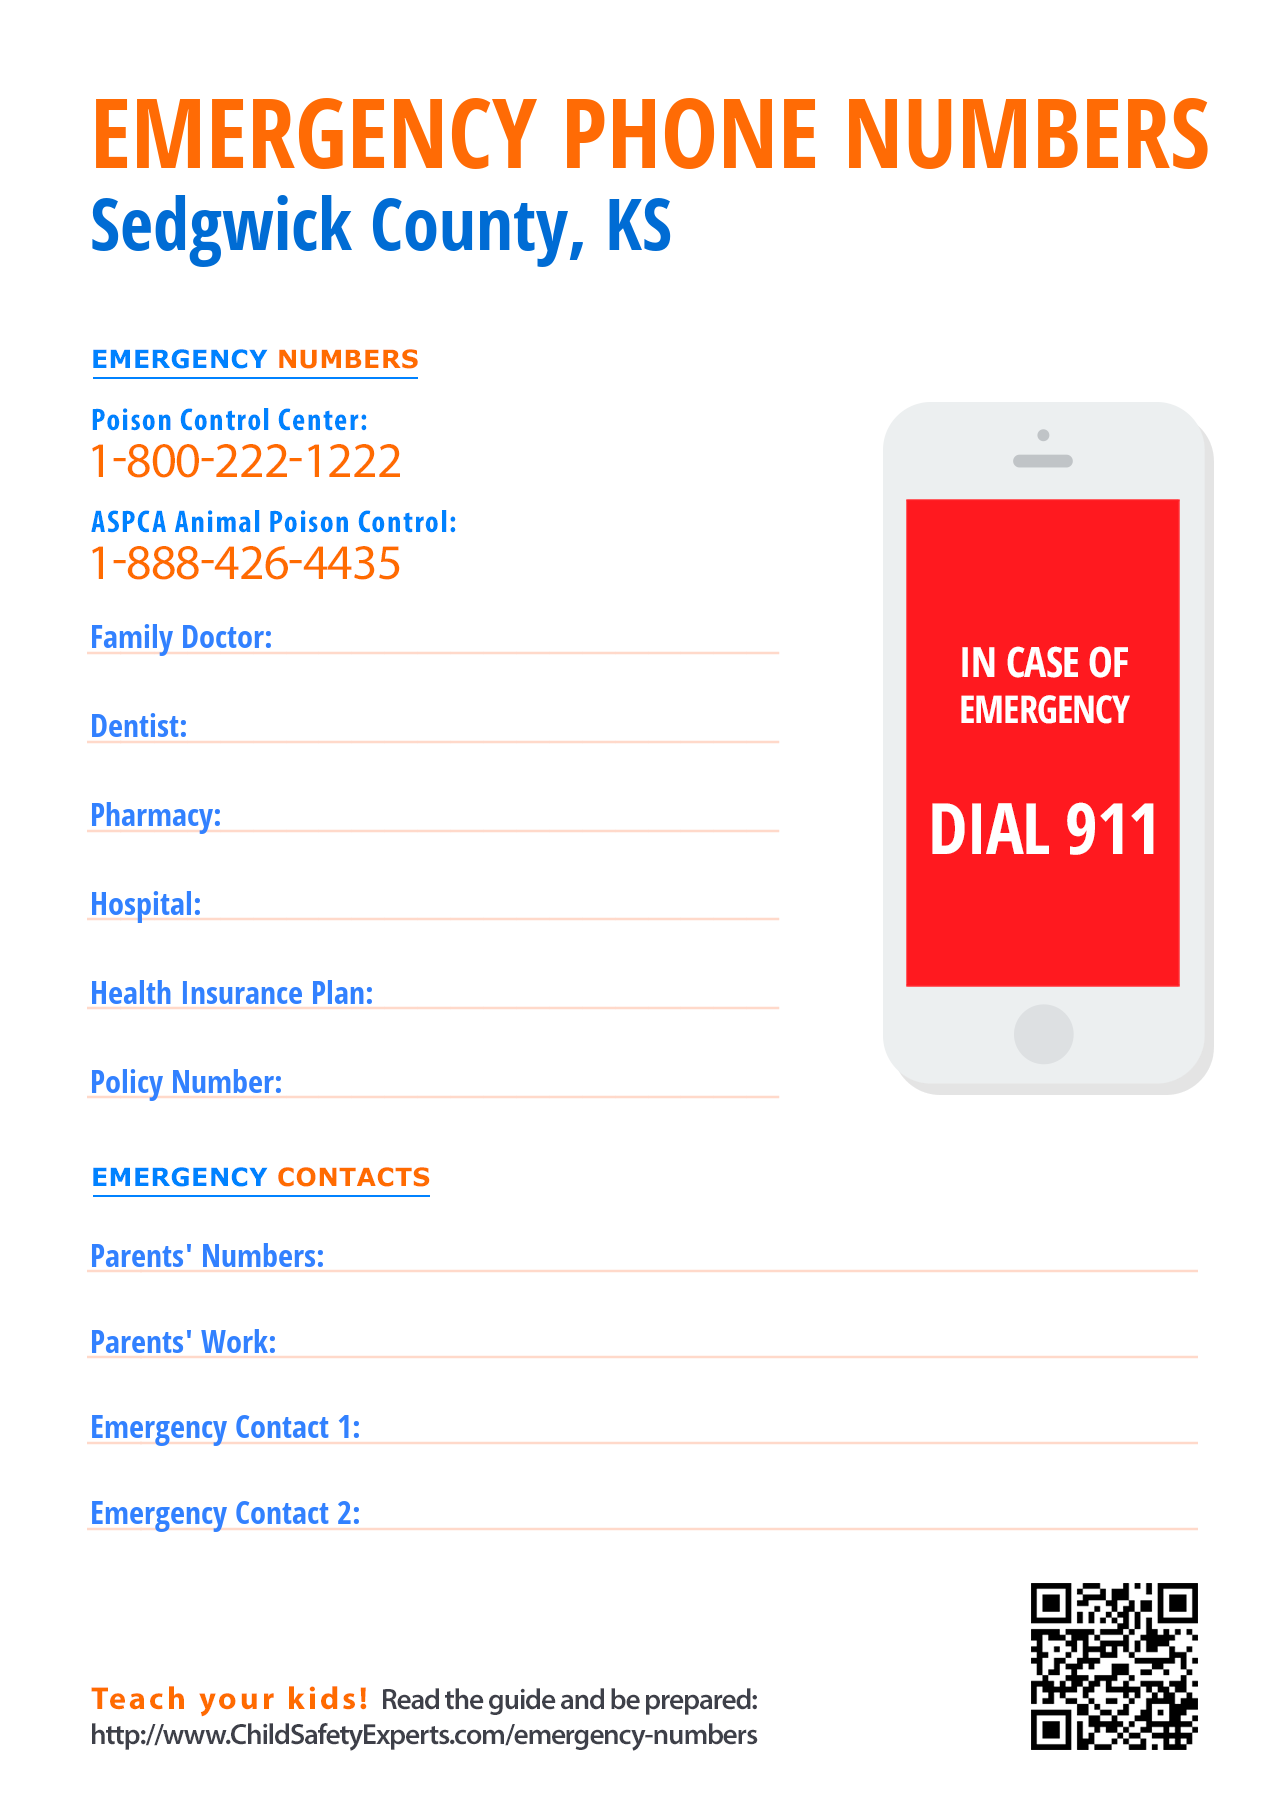 Important emergency phone numbers in Sedgwick County, Kansas